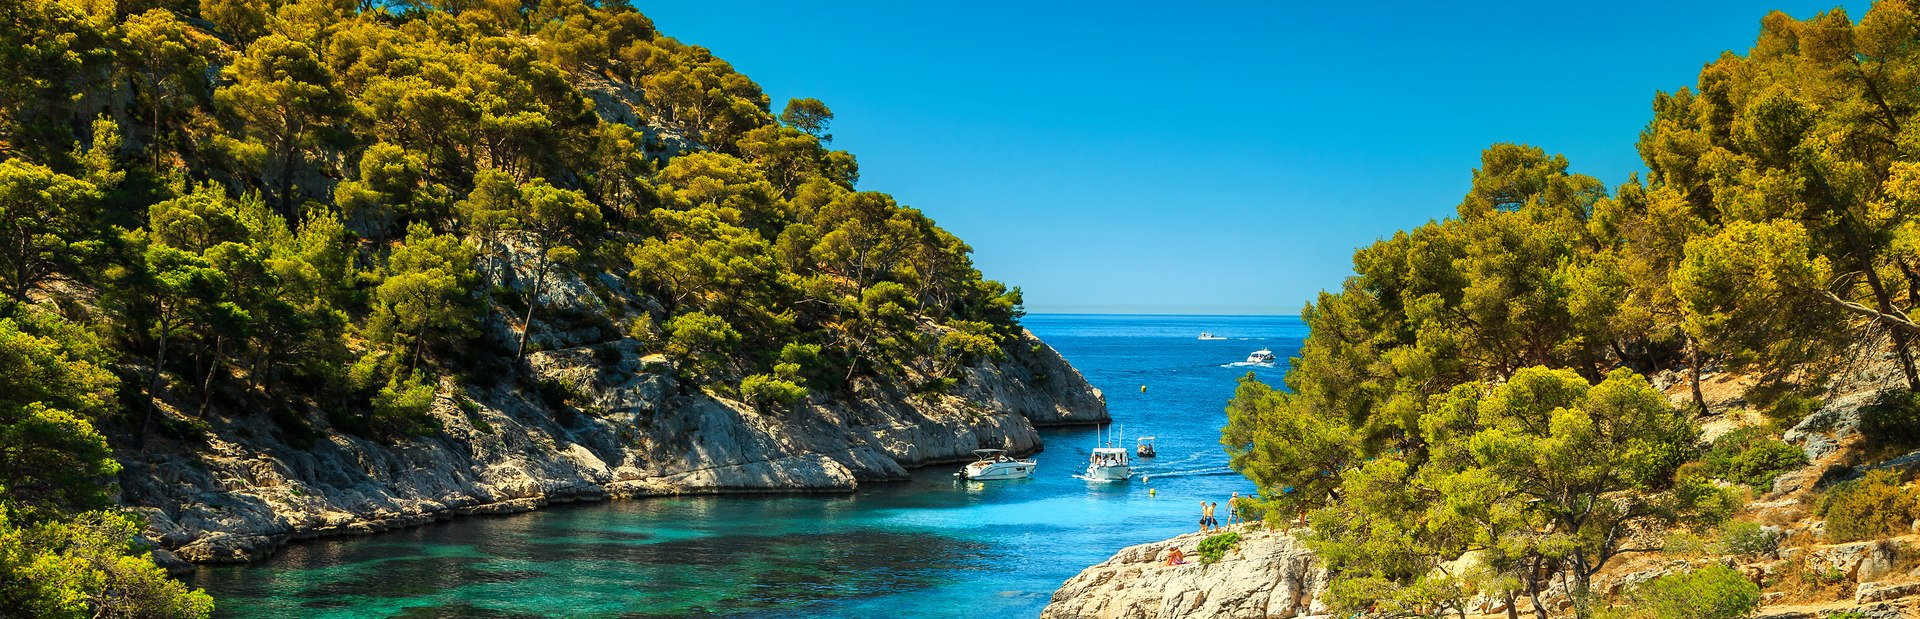 French Riviera climate photo